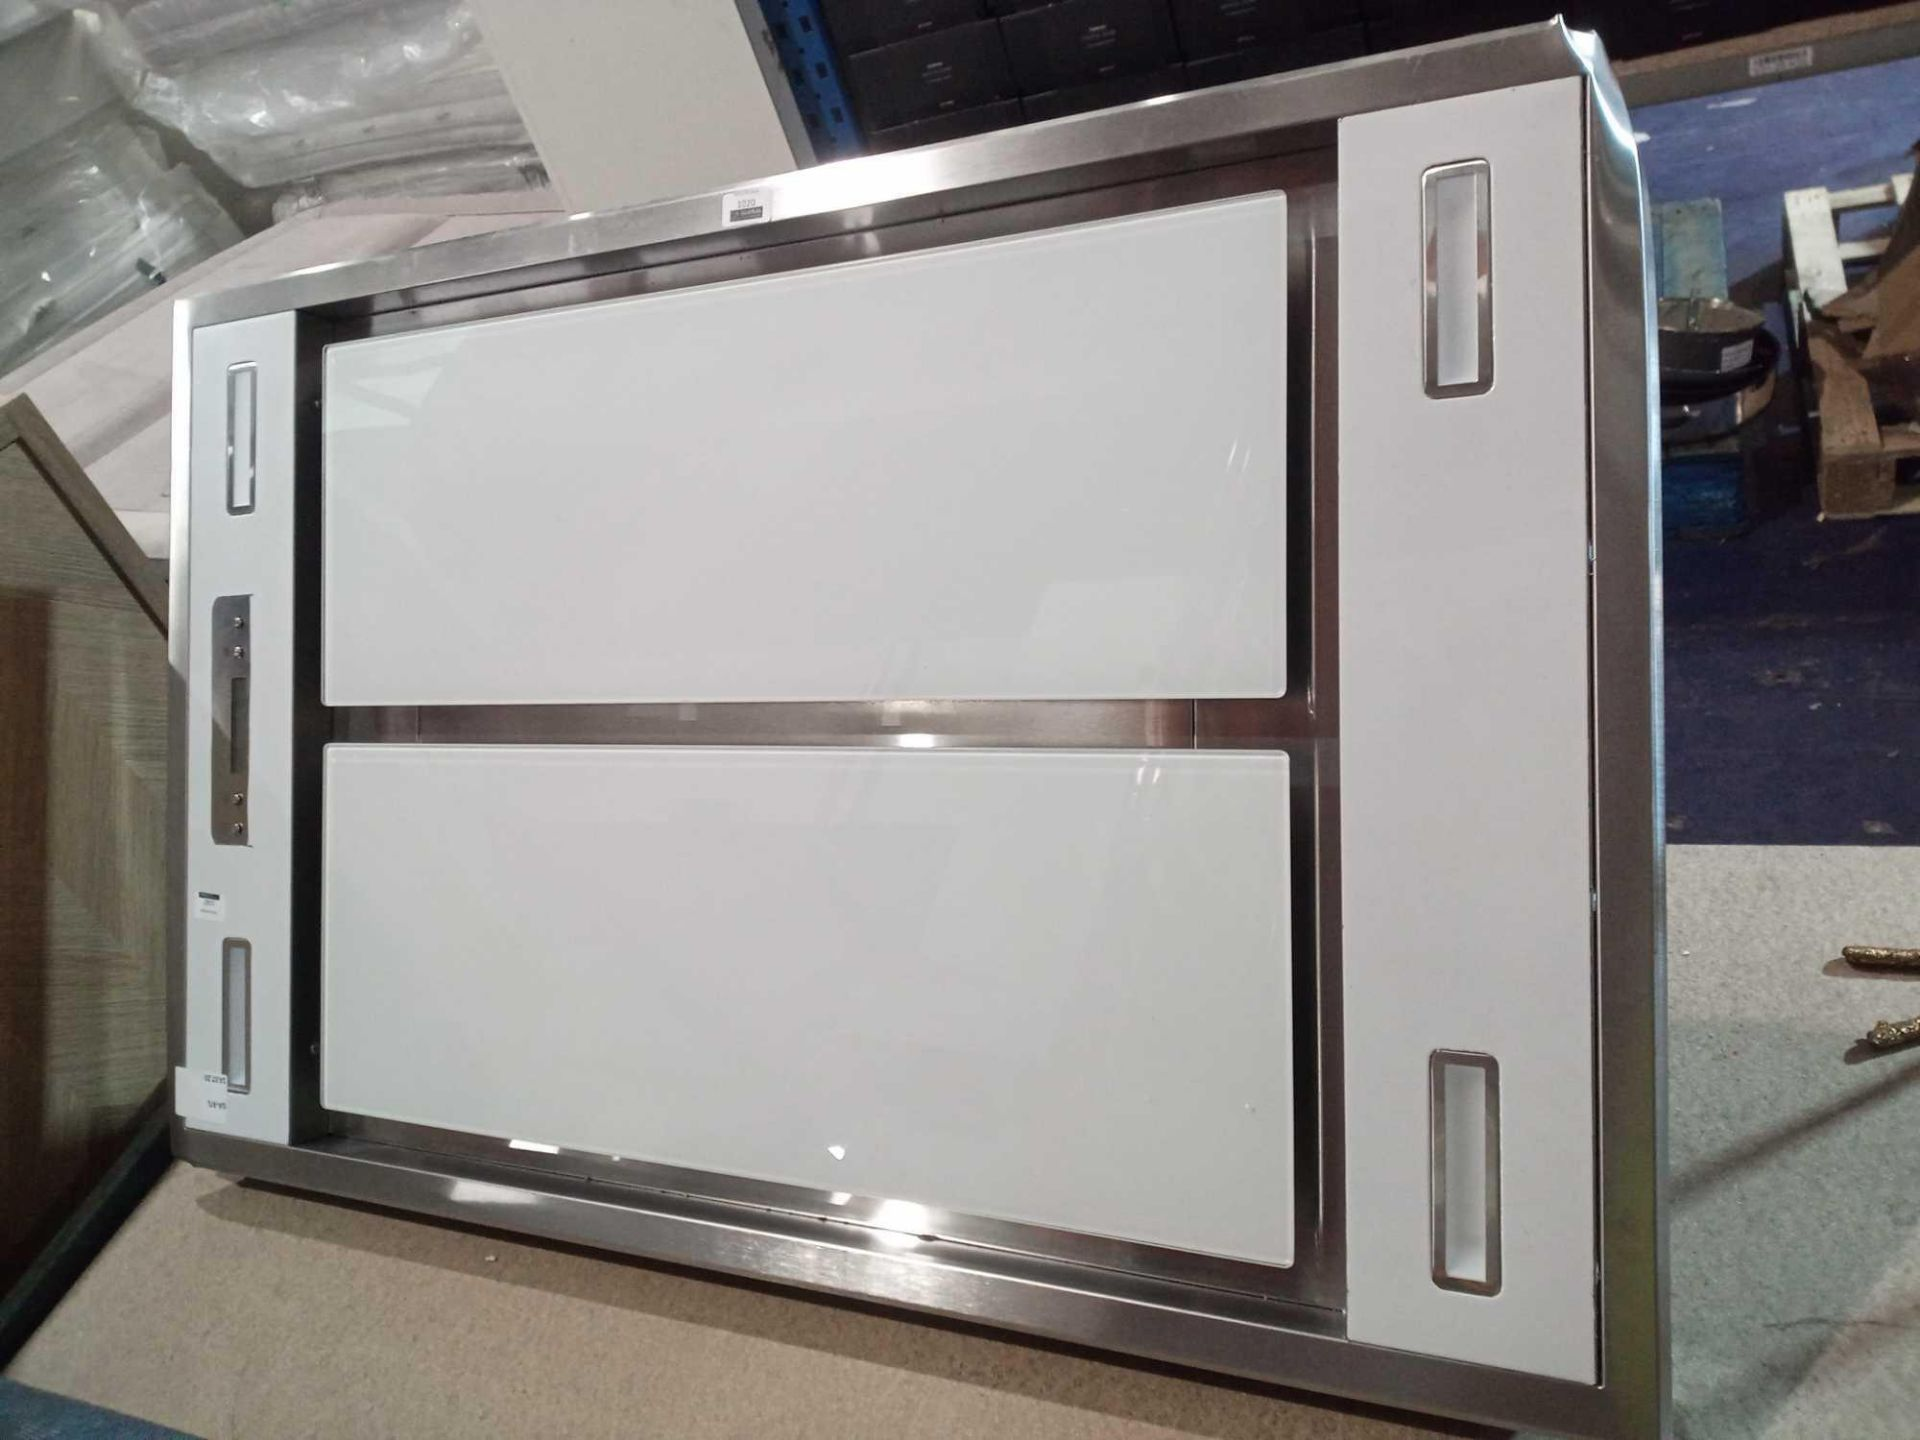 RRP £150 Unboxed Large White Tempered Glass Oven Cooker Fan Hood